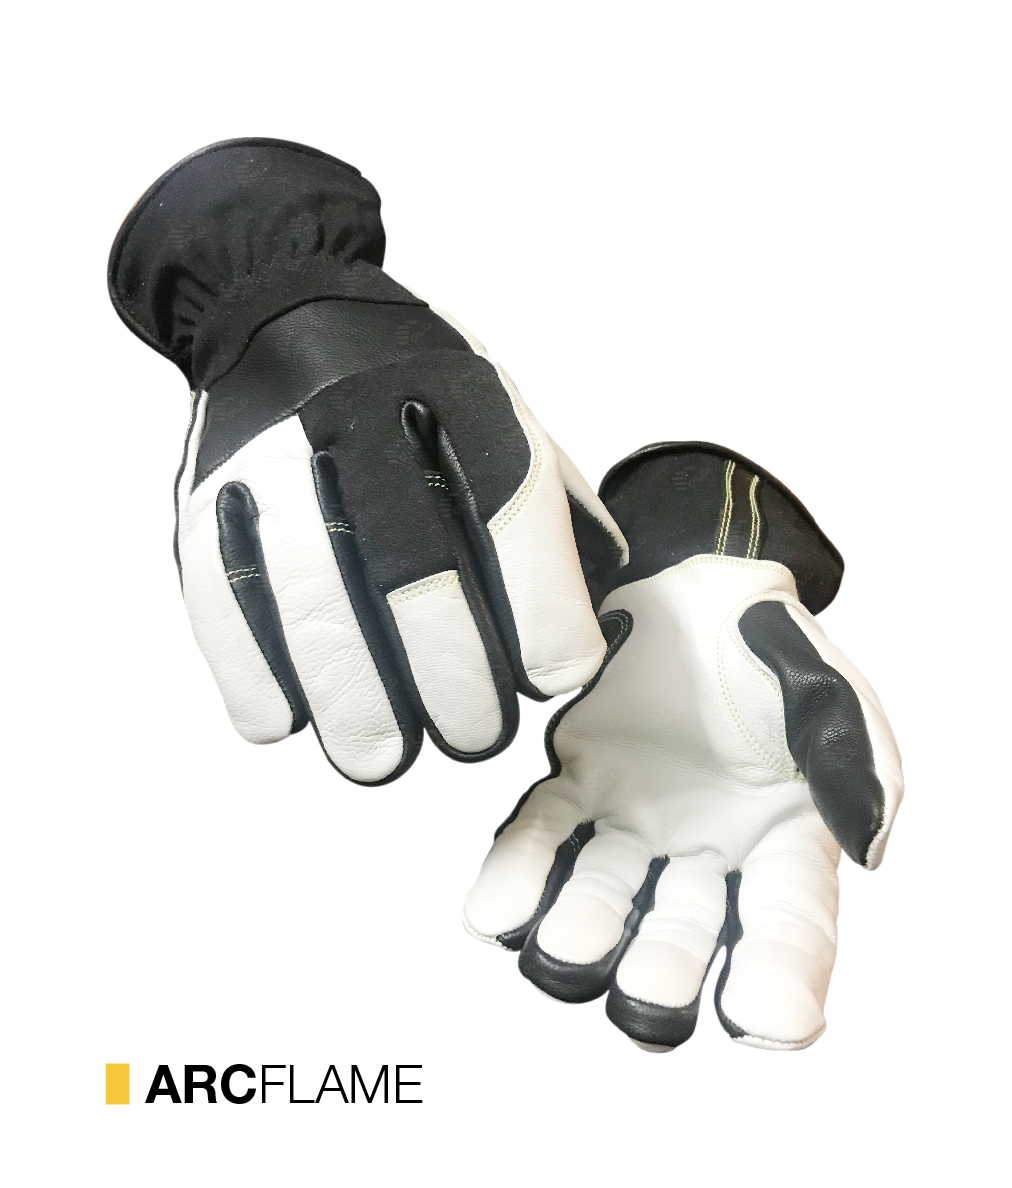 ARCFLAME cut-resistant gloves by elite leather